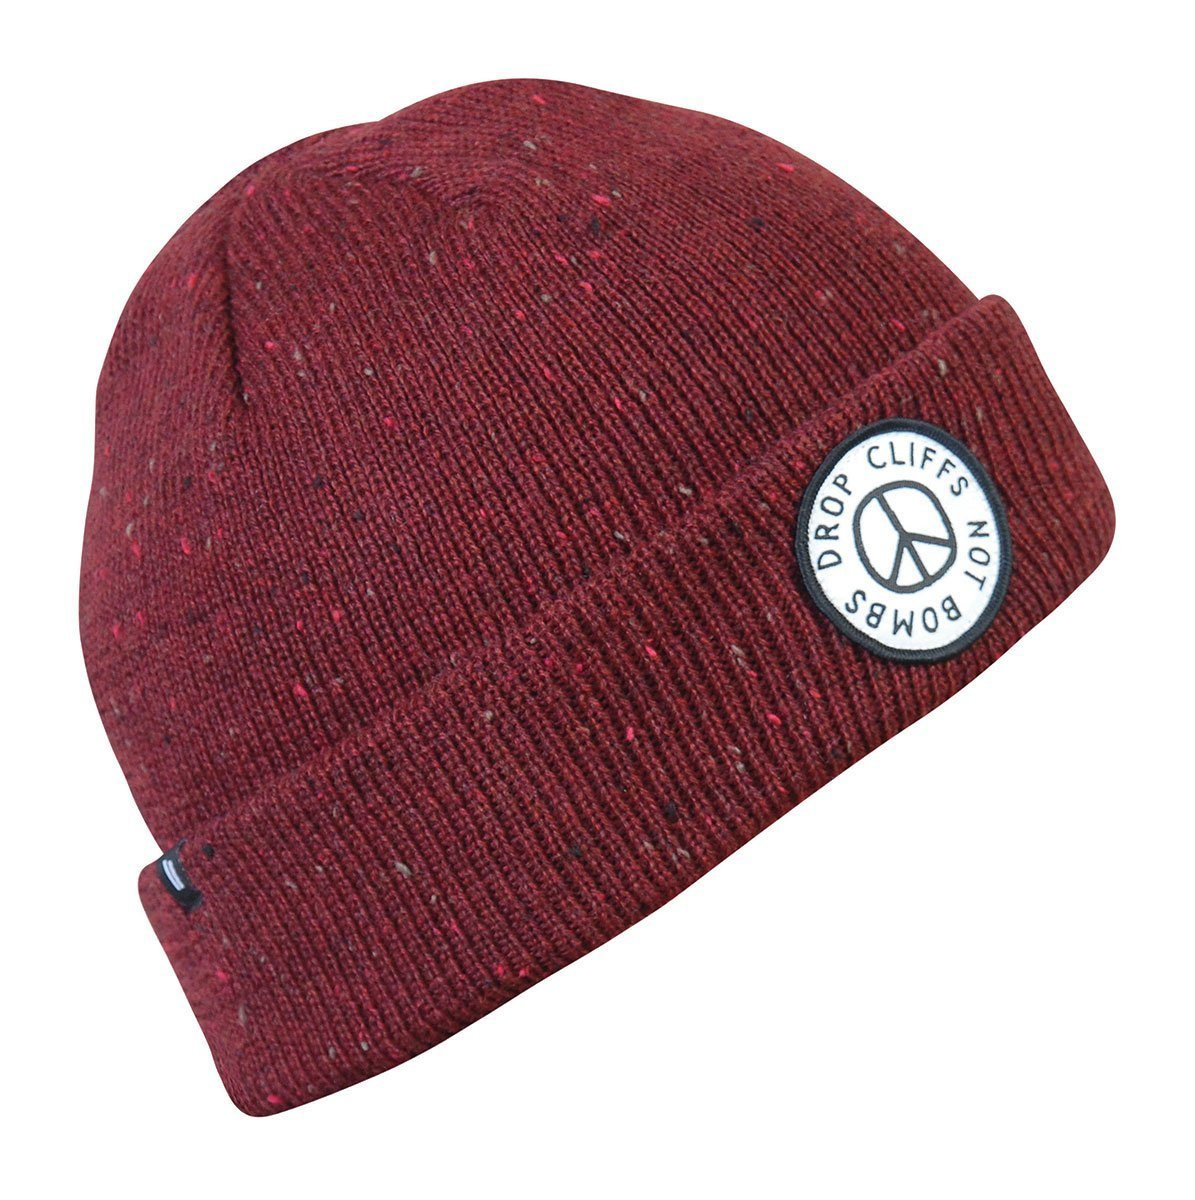 Planks Peace Beanie 2019 Berry Berry AHE-PEACE909